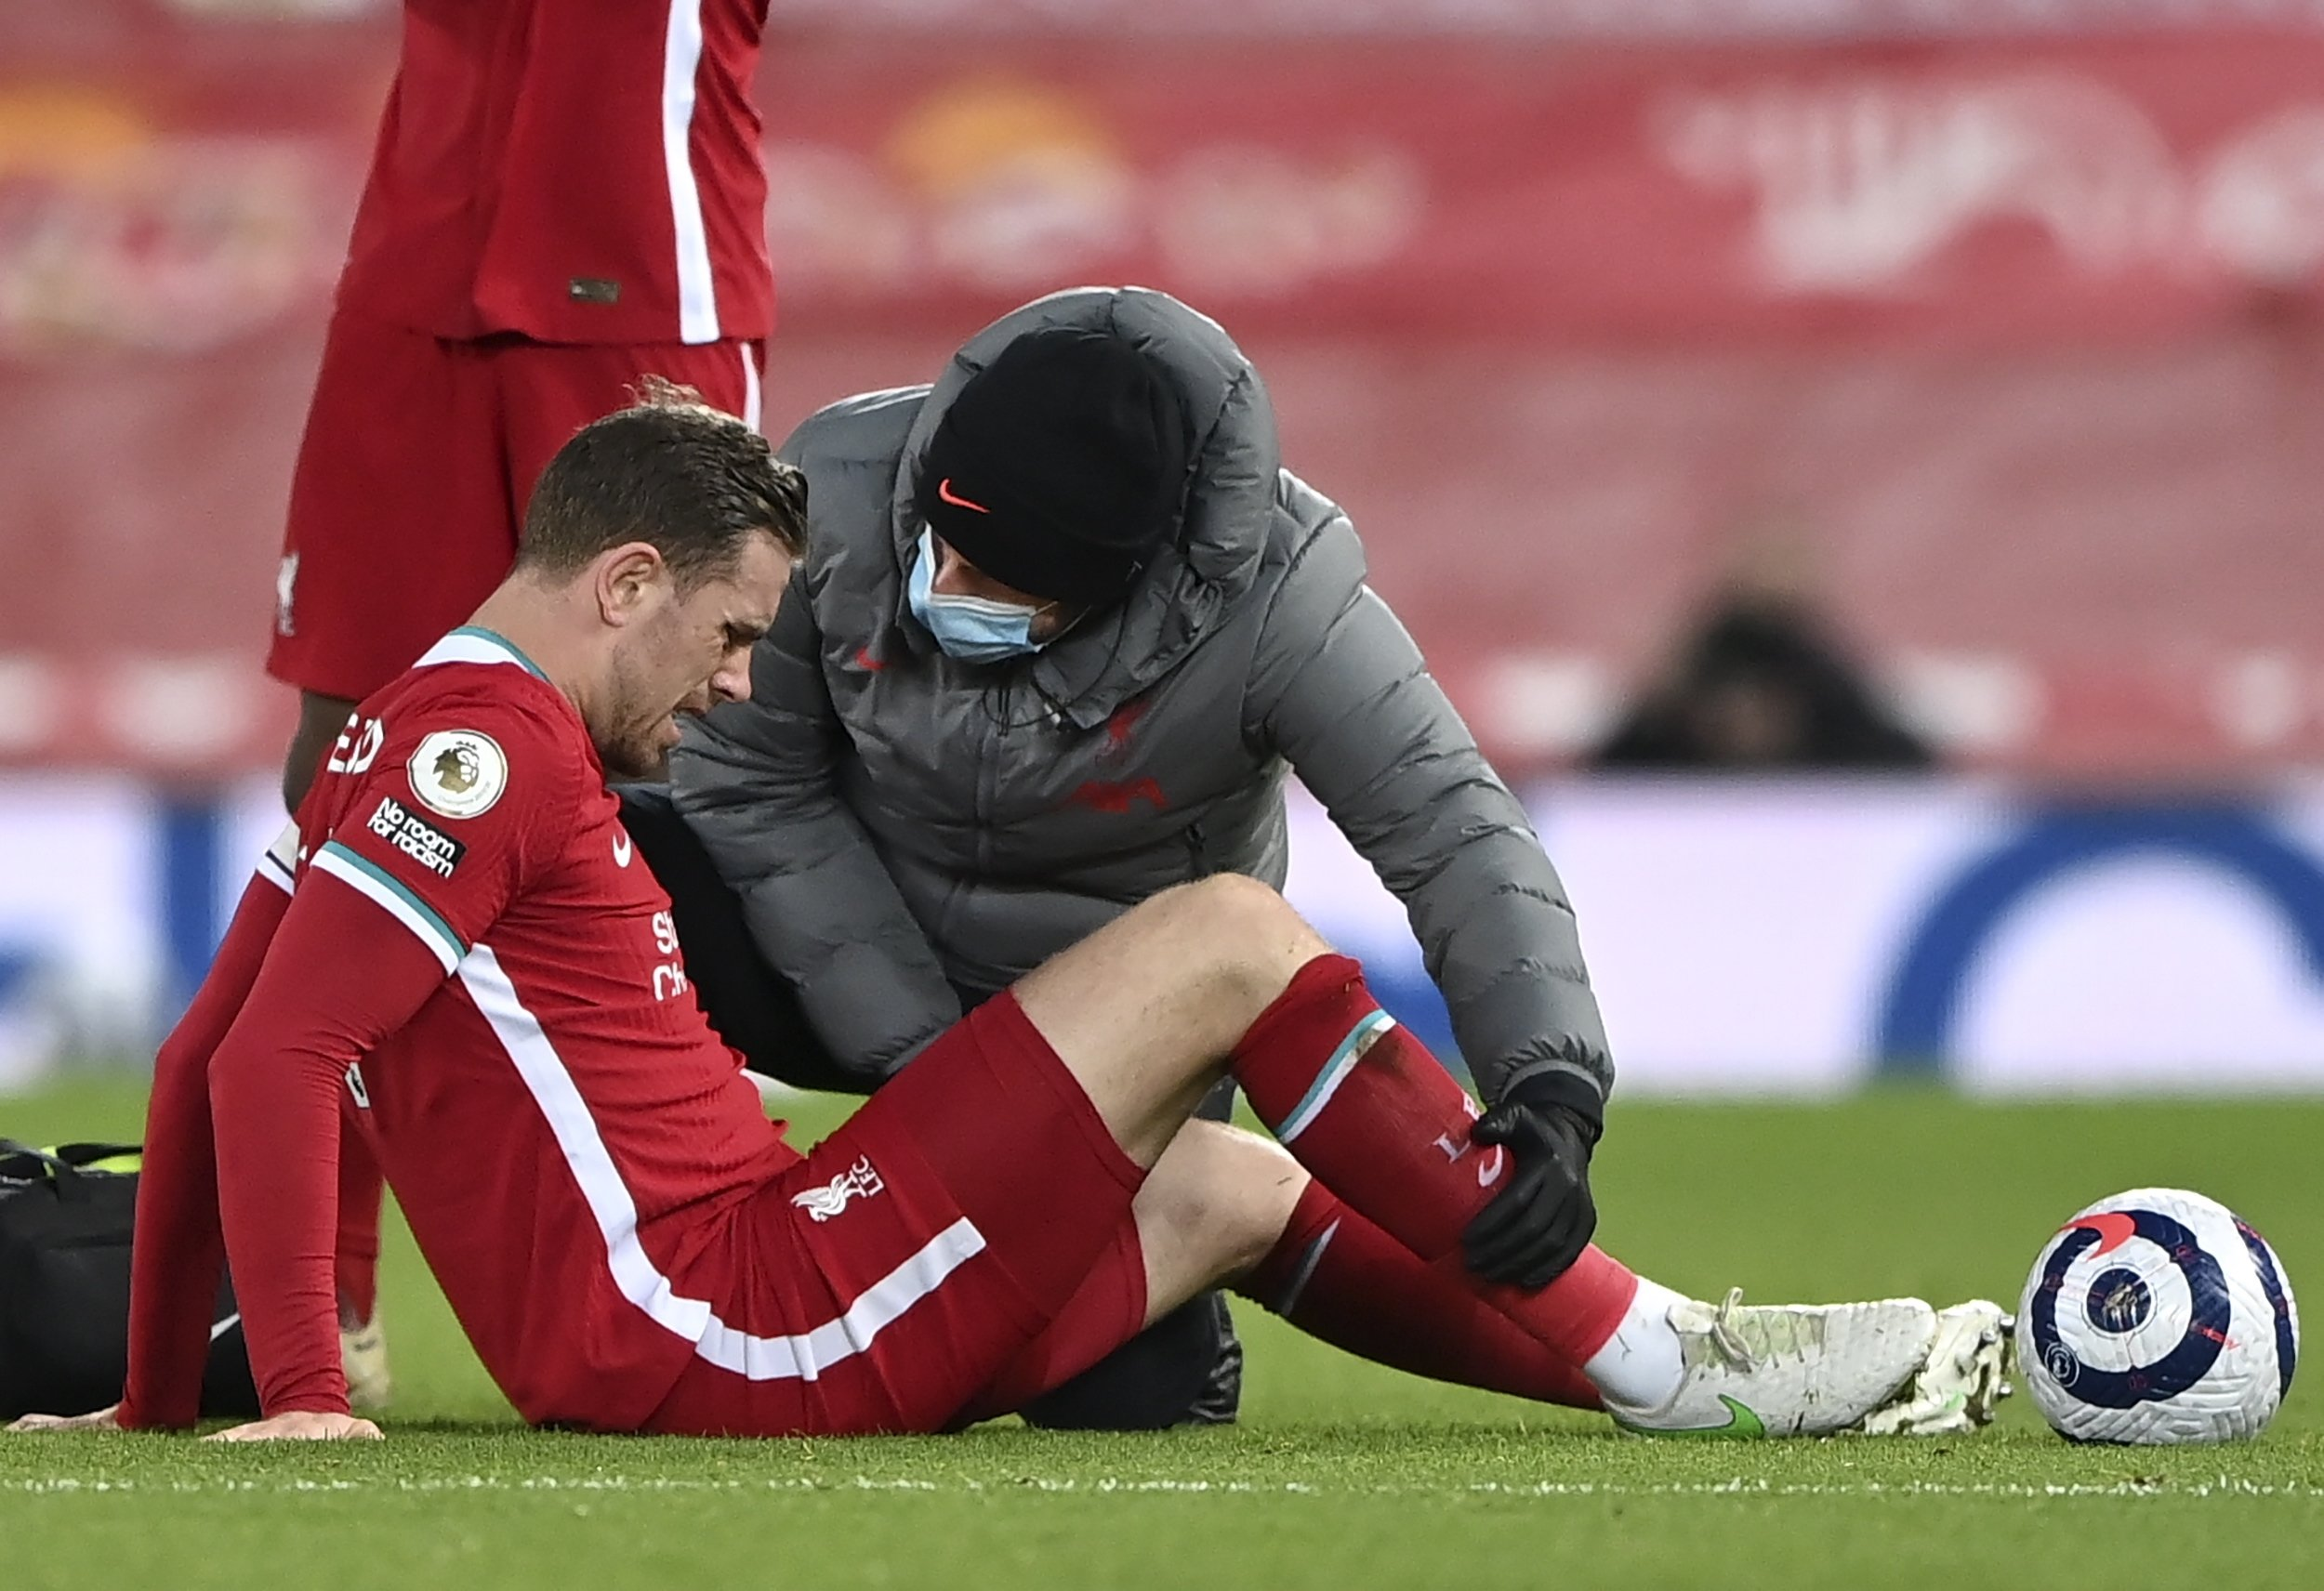 Liverpool's Jordan Henderson (L) receives medical assistance after picking up an injury during the English Premier League match against Everton, Liverpool, Britain, Feb. 20, 2021. (EPA Photo)